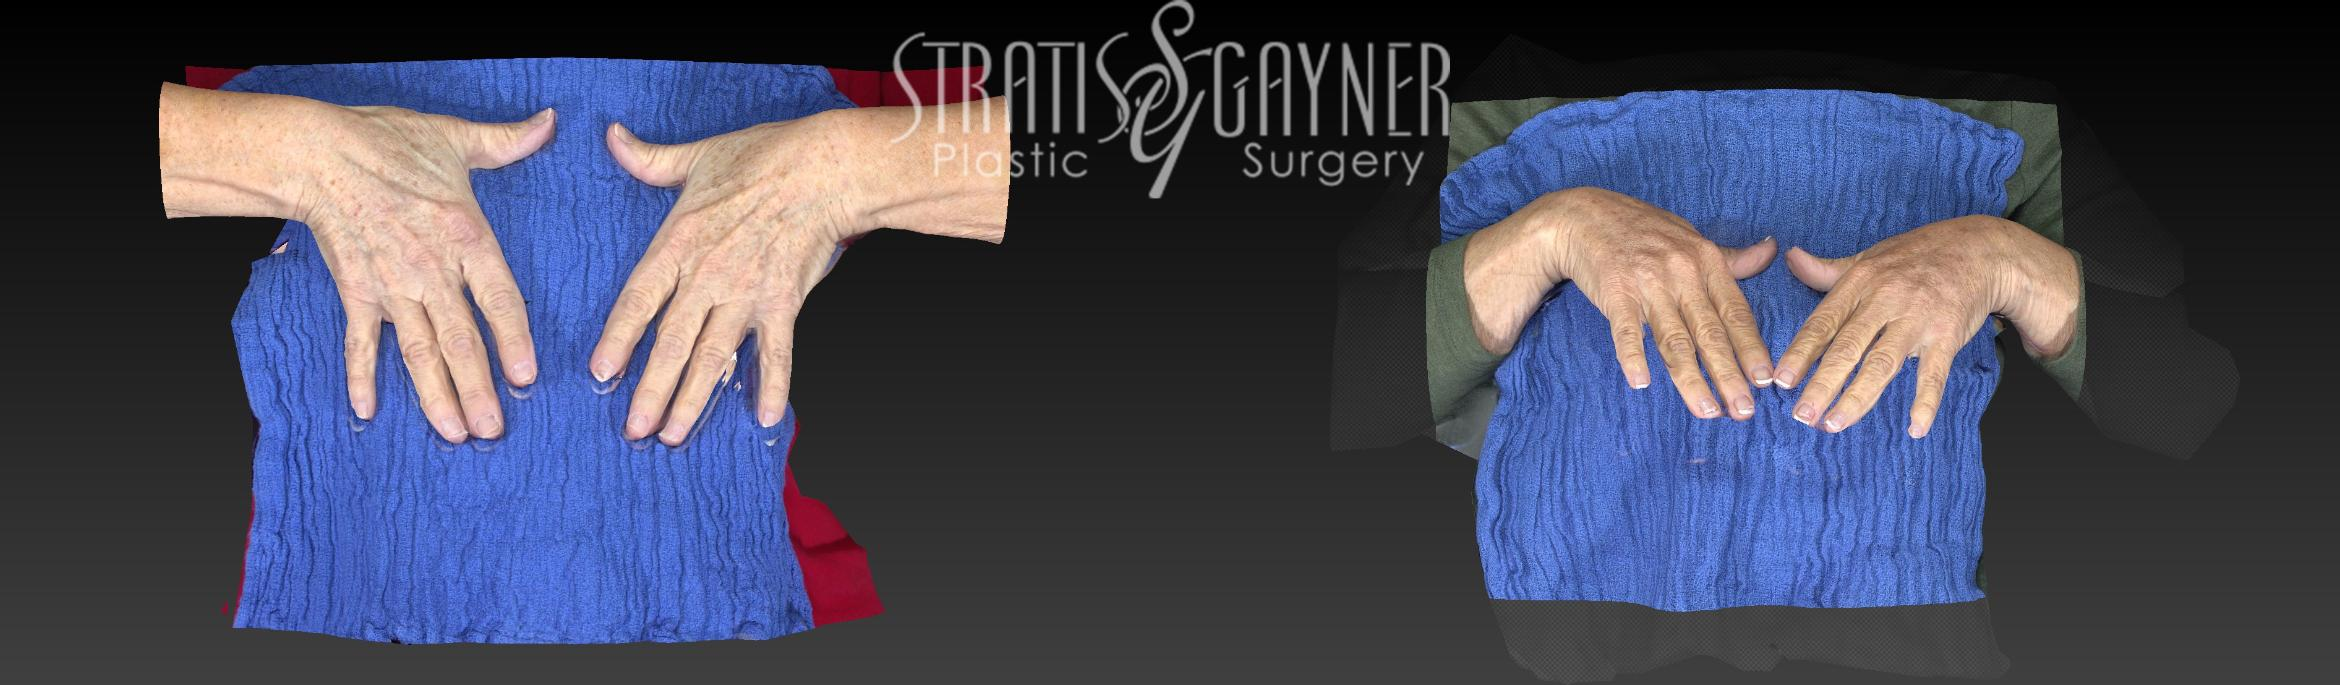 Fat Transfer to Hands Case 172 Before & After View #1 | Harrisburg, PA | Stratis Gayner Plastic Surgery